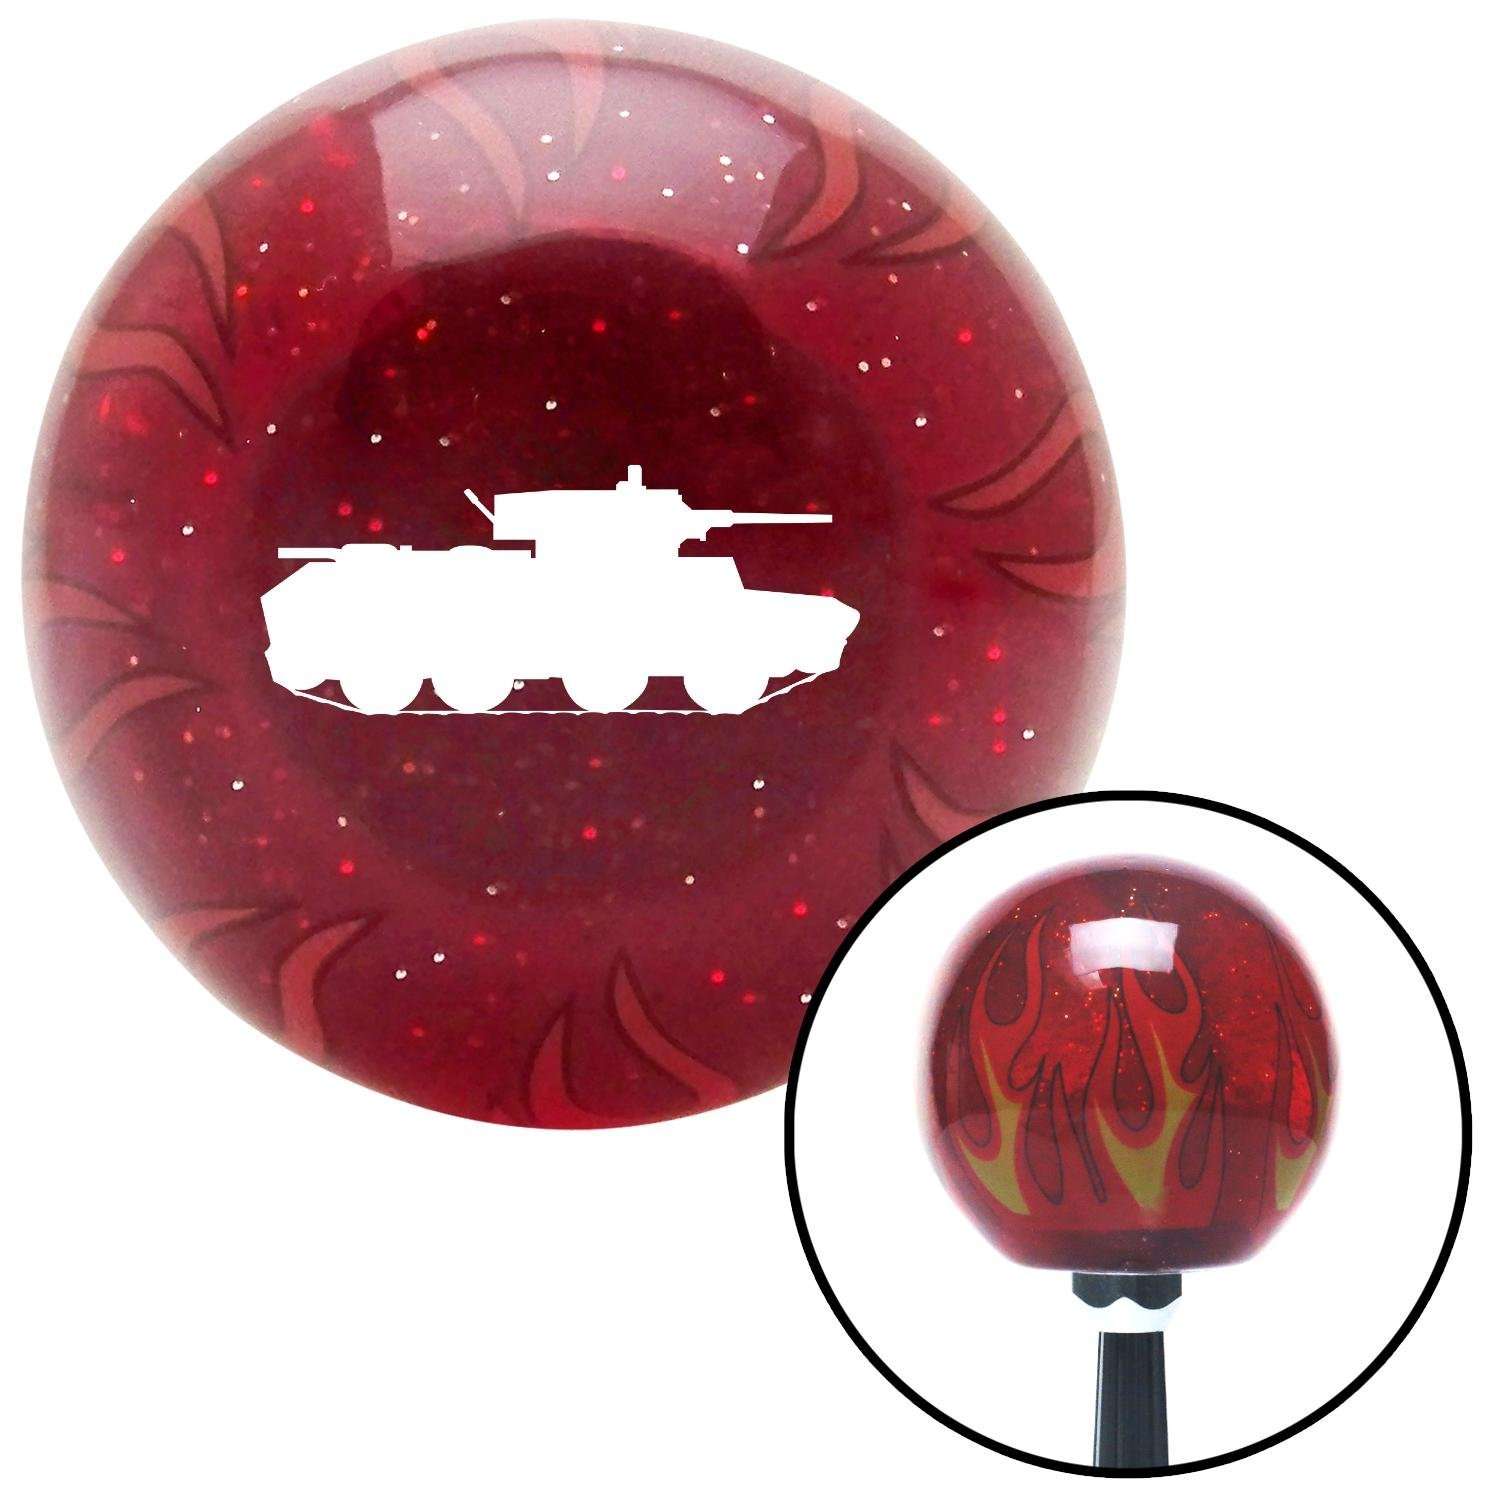 American Shifter 240280 Red Flame Metal Flake Shift Knob with M16 x 1.5 Insert White Military Tank